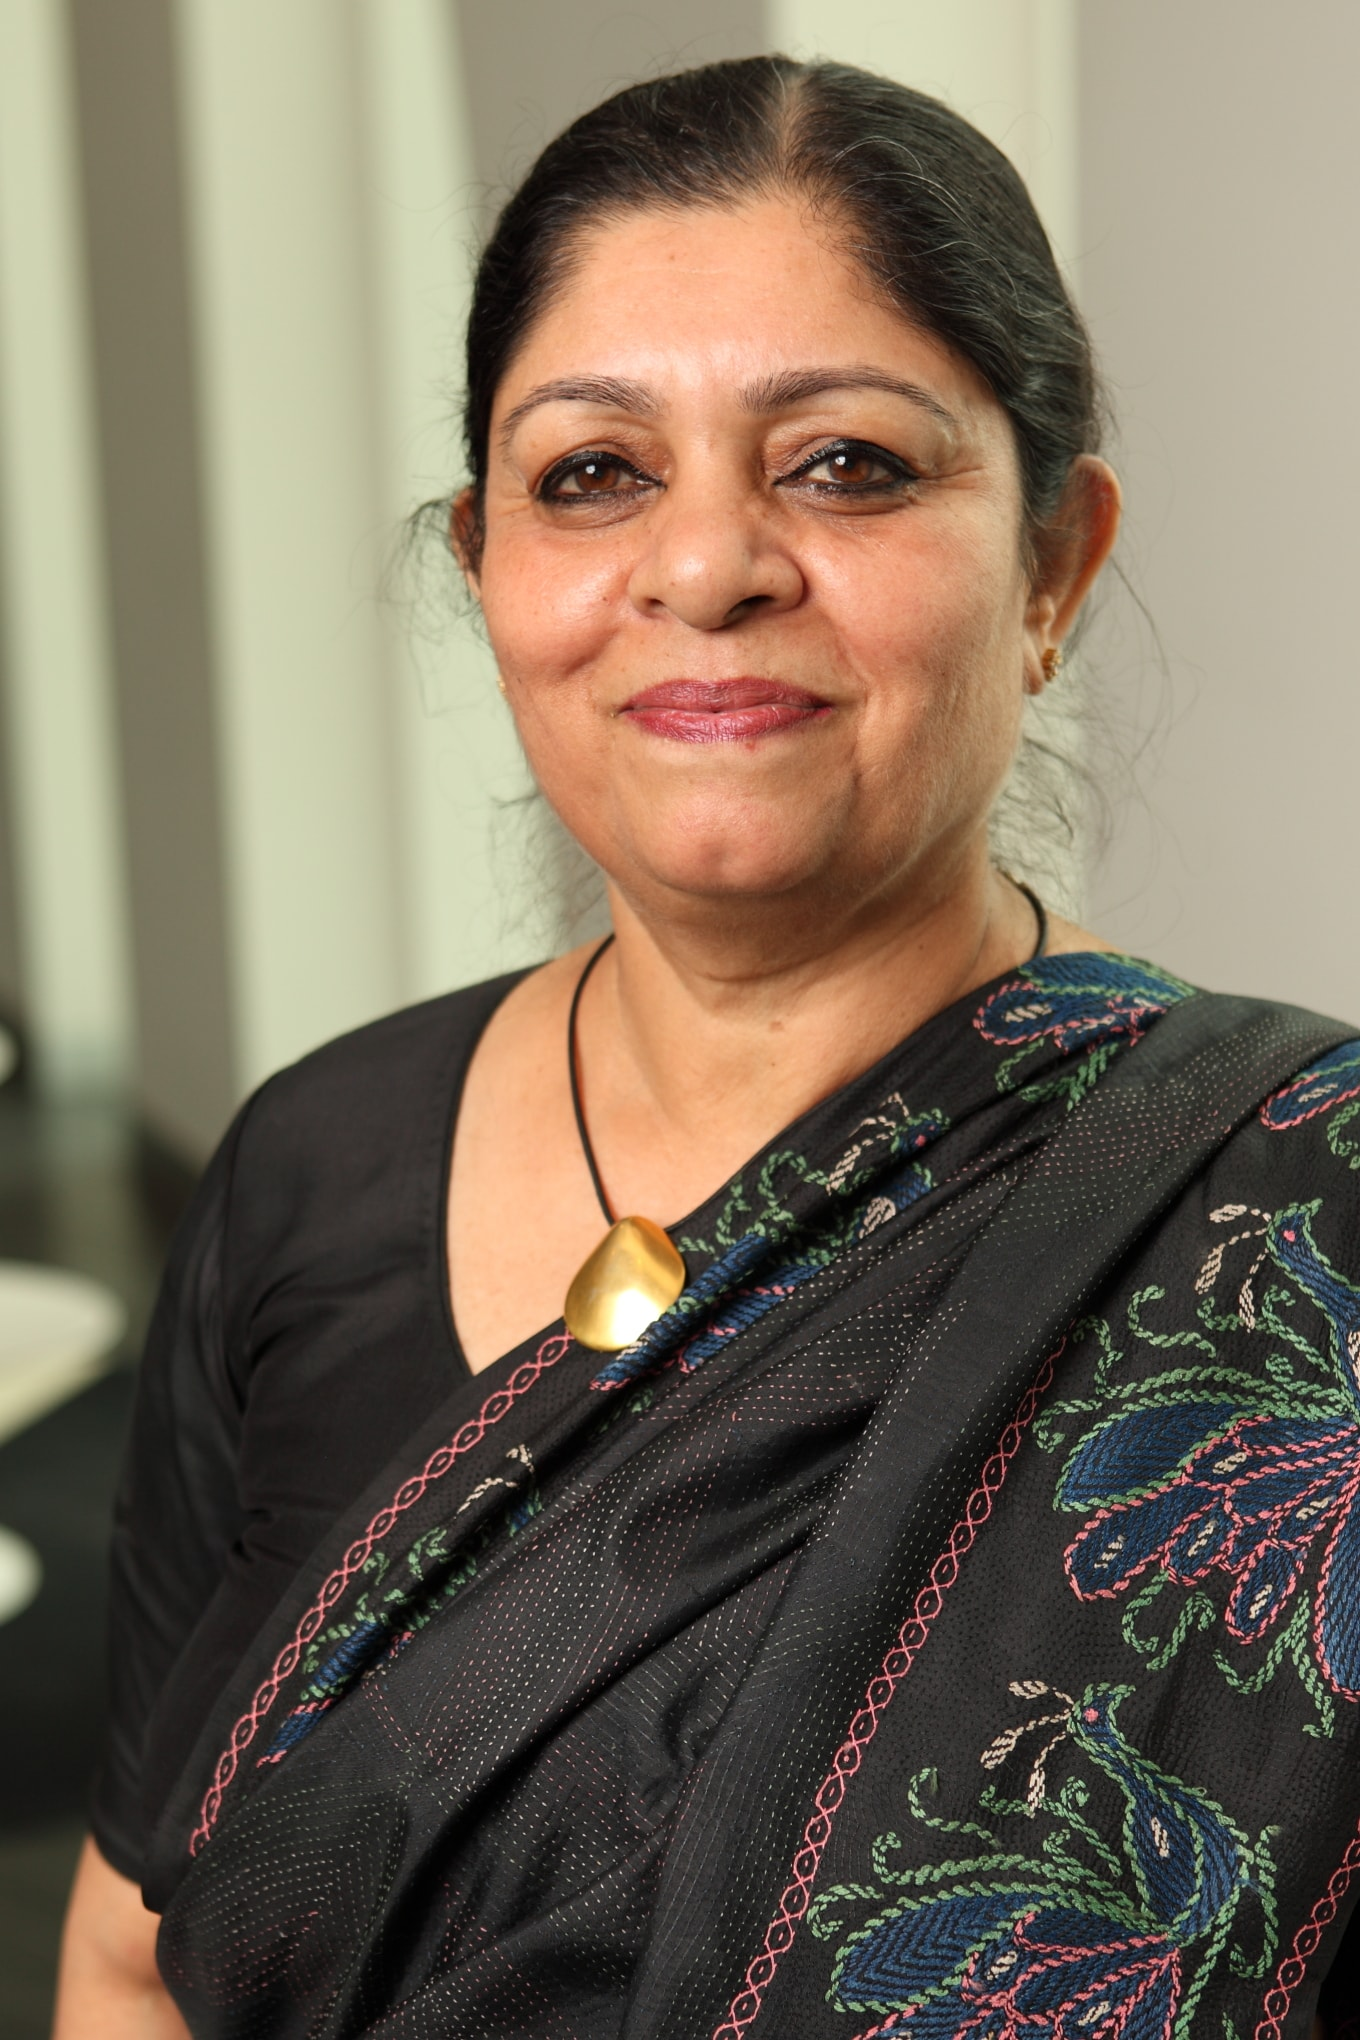 Poonam Muttreja, executive director of Population Foundation of India.